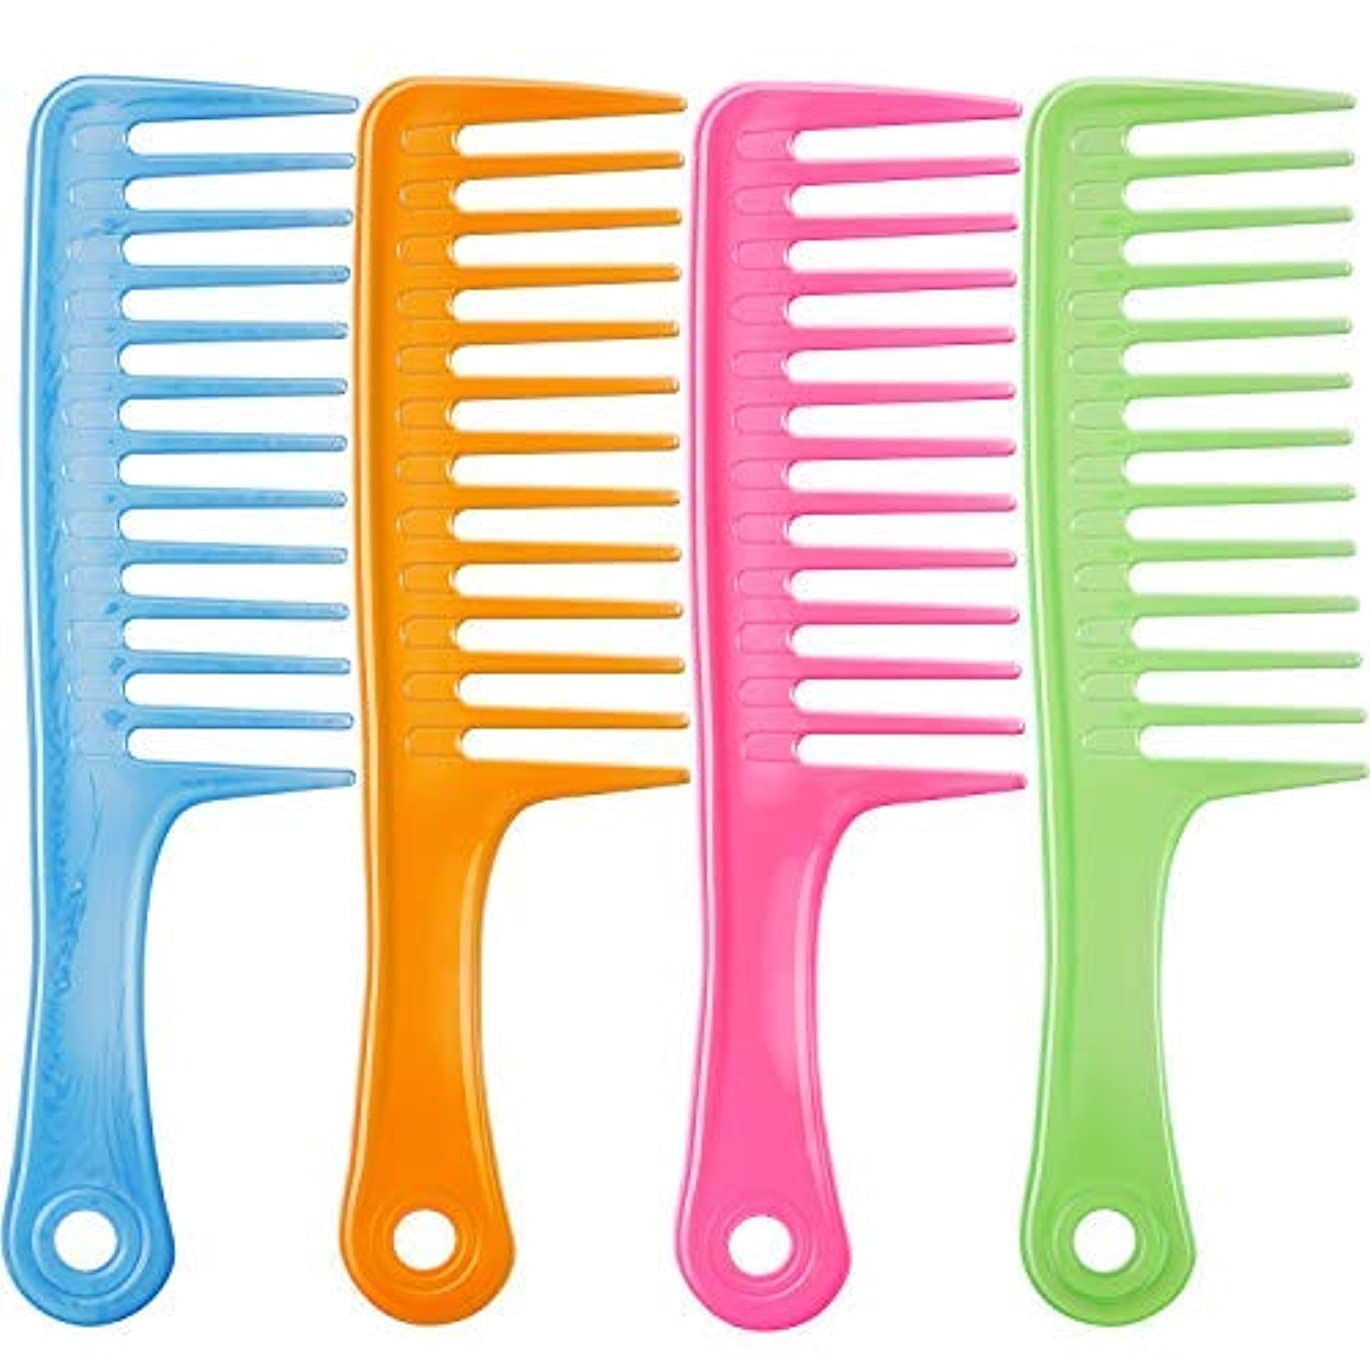 オフインタフェース誓約TecUnite 4 Pieces 9 1/2 Inches Anti-static Large Tooth Detangle Comb, Wide Tooth Hair Comb Salon Shampoo Comb...